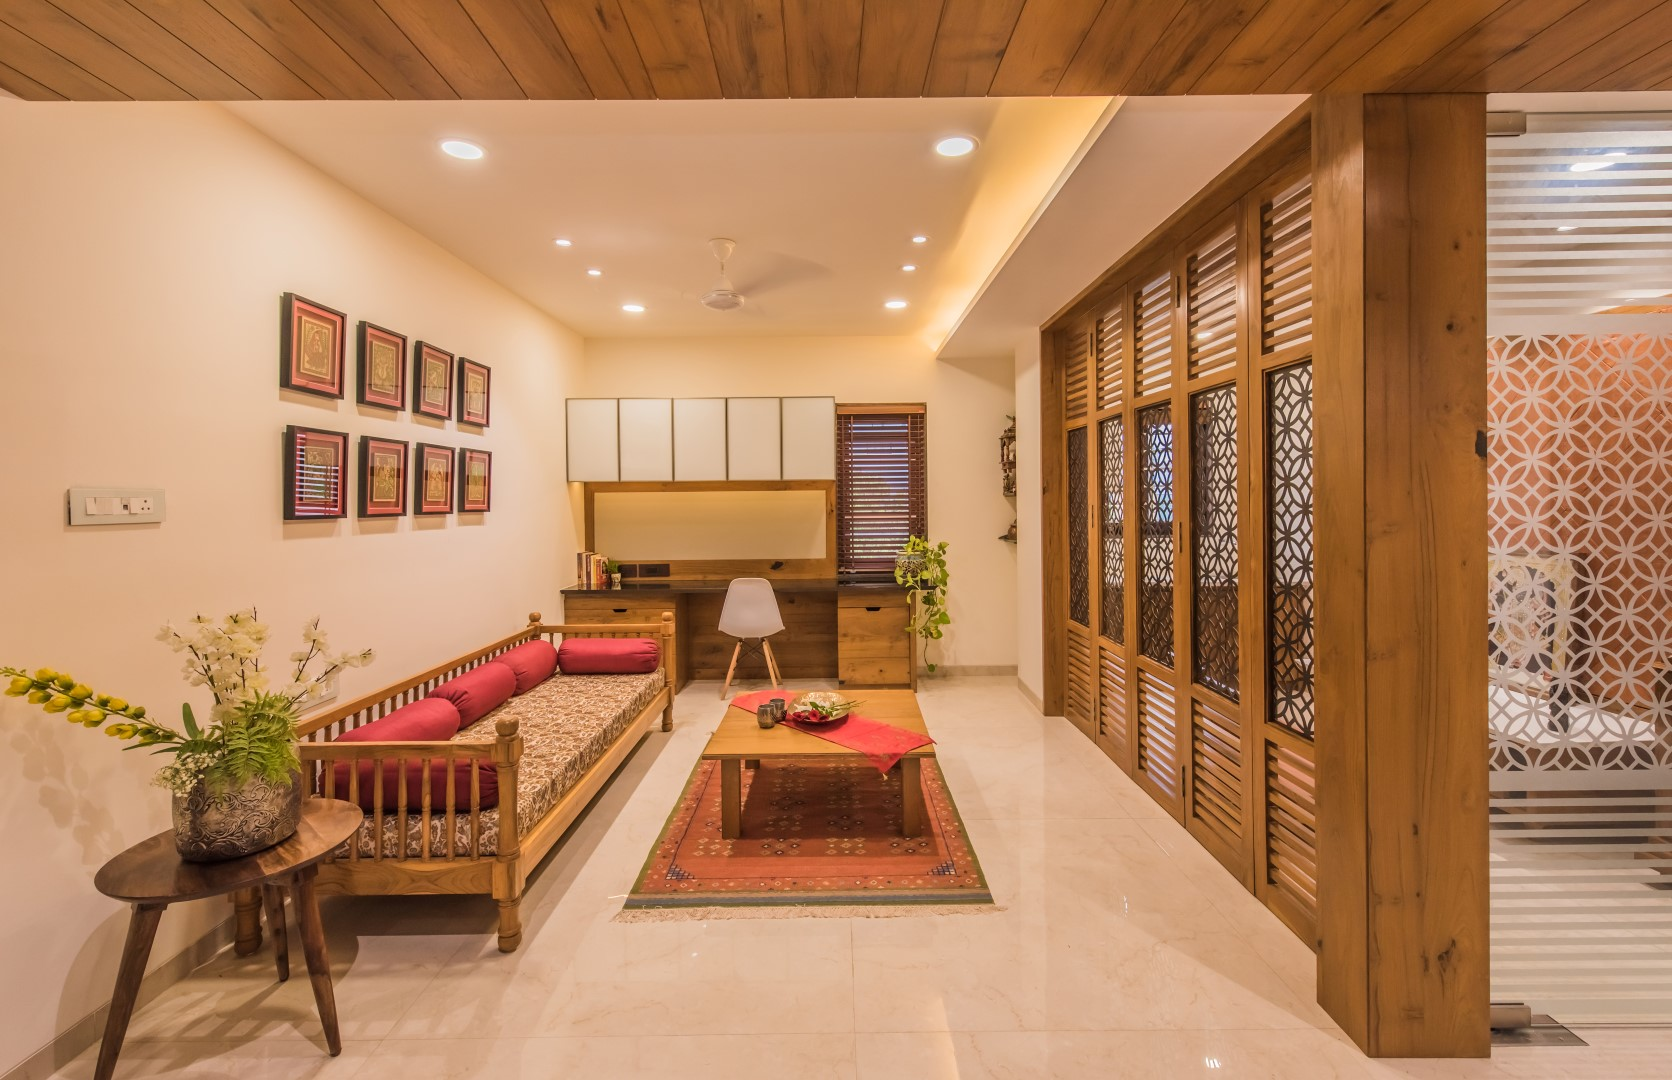 Contemporary Indian Style Apartment Interiors Ms Design Studio The Architects Diary